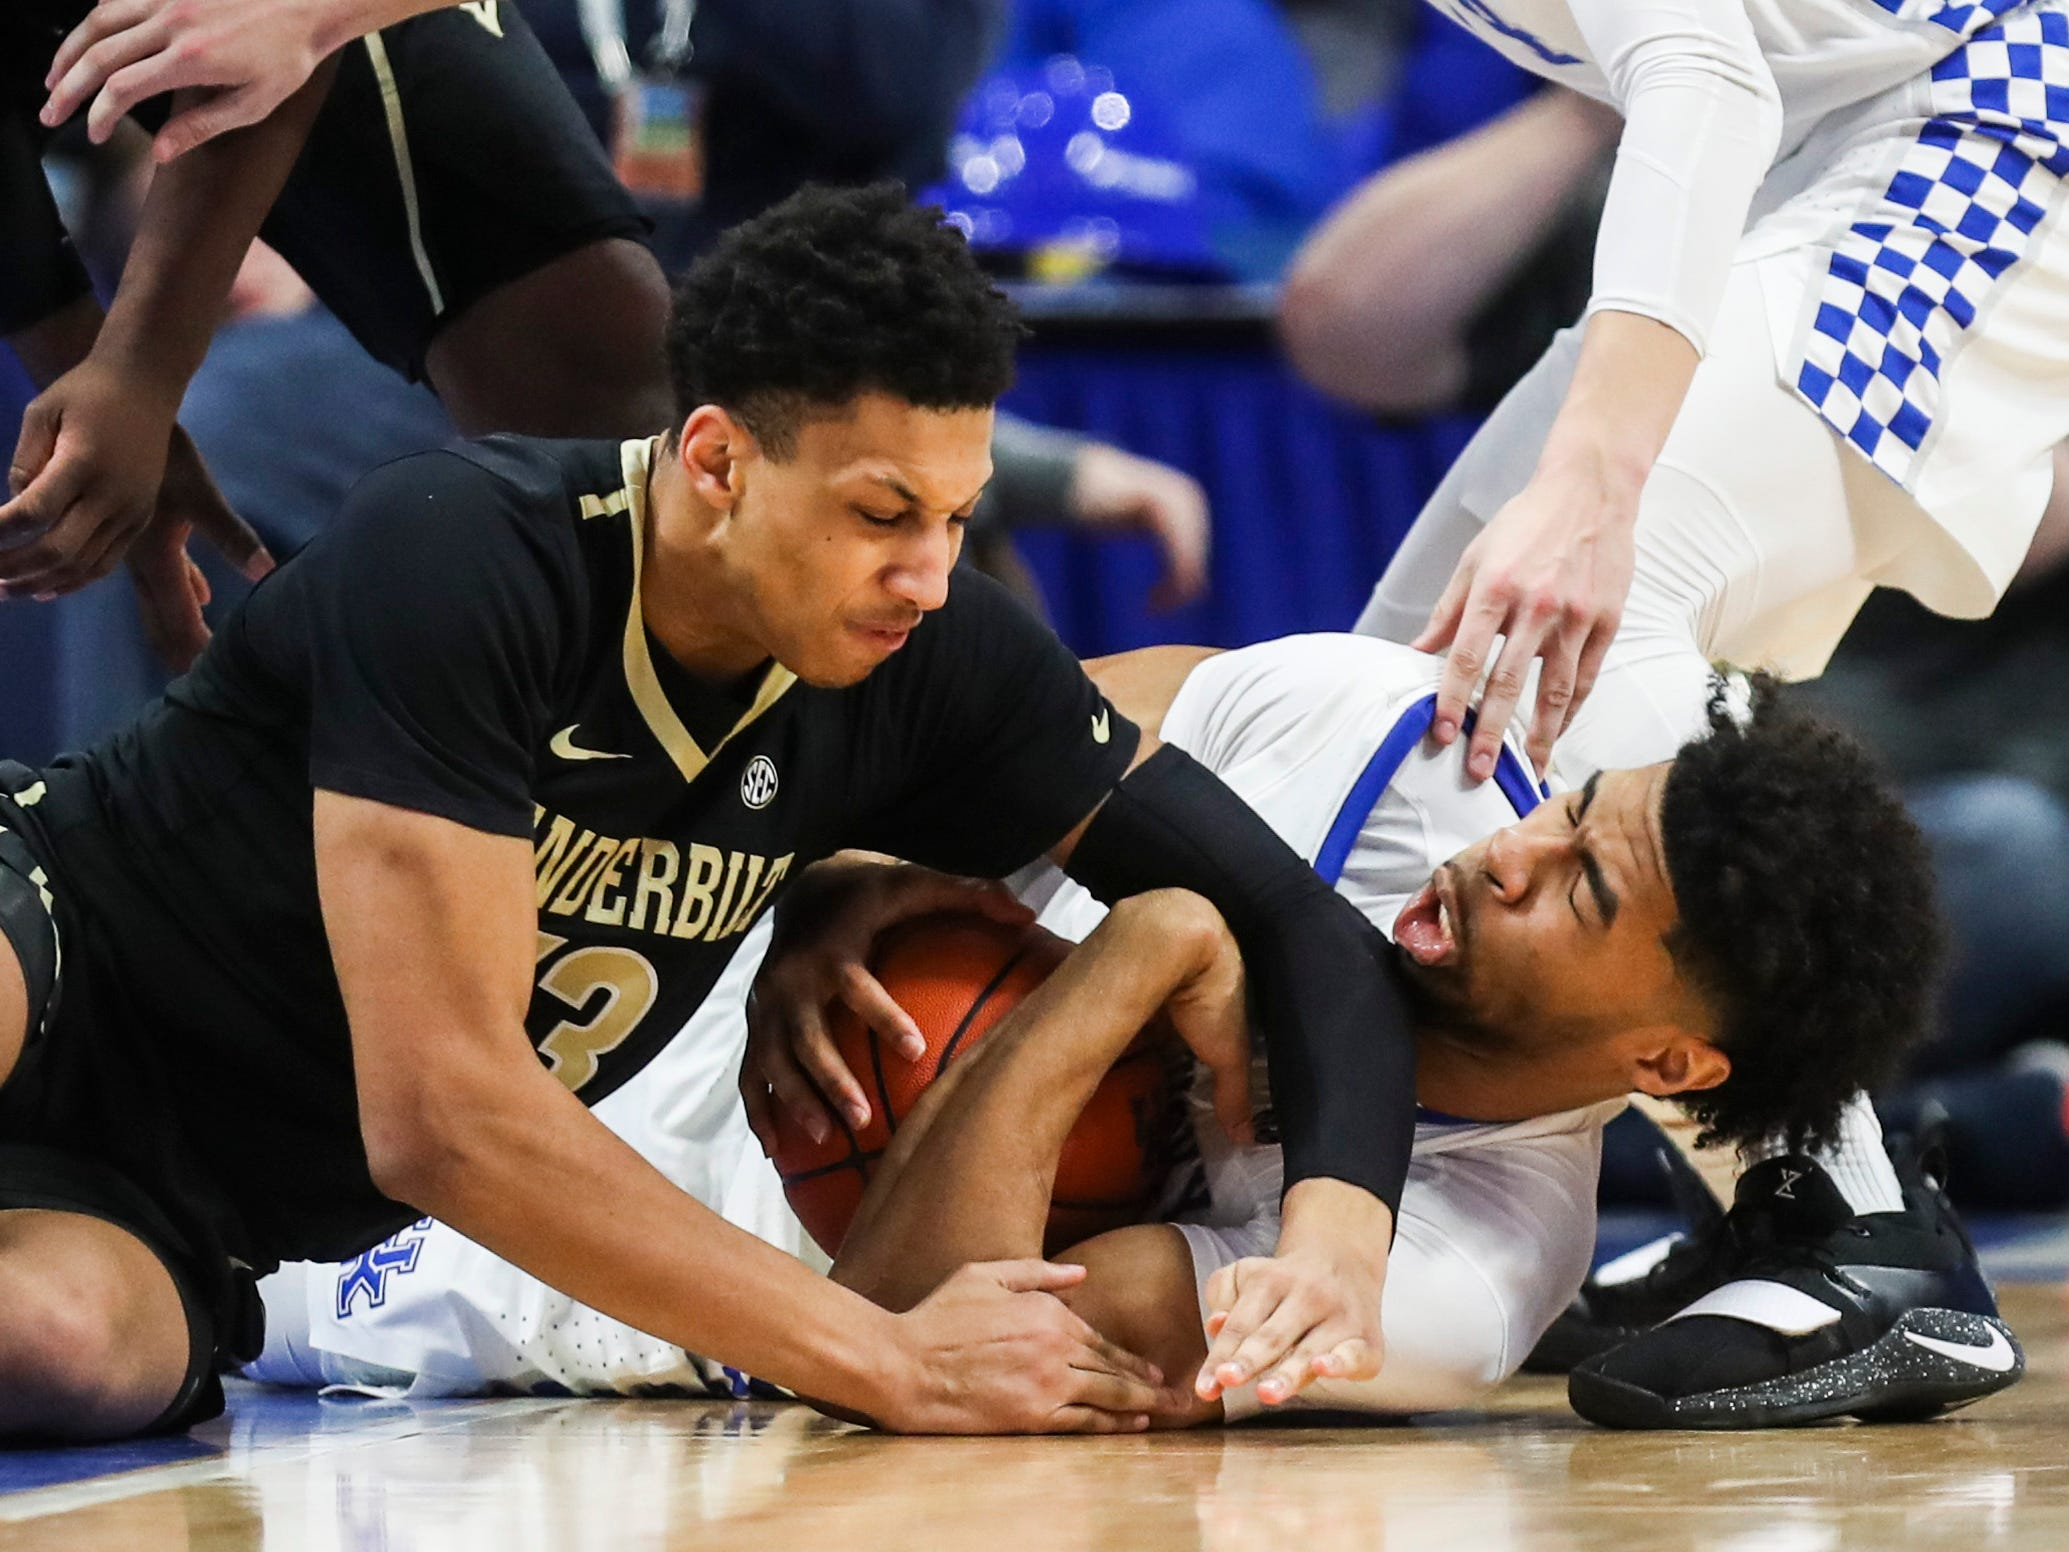 Kentucky's Nick Richards gets hit in the mouth by Vandy's Matthew Moyer, who was called for the foul Saturday night at Rupp Arena in Lexington. January 12, 2019